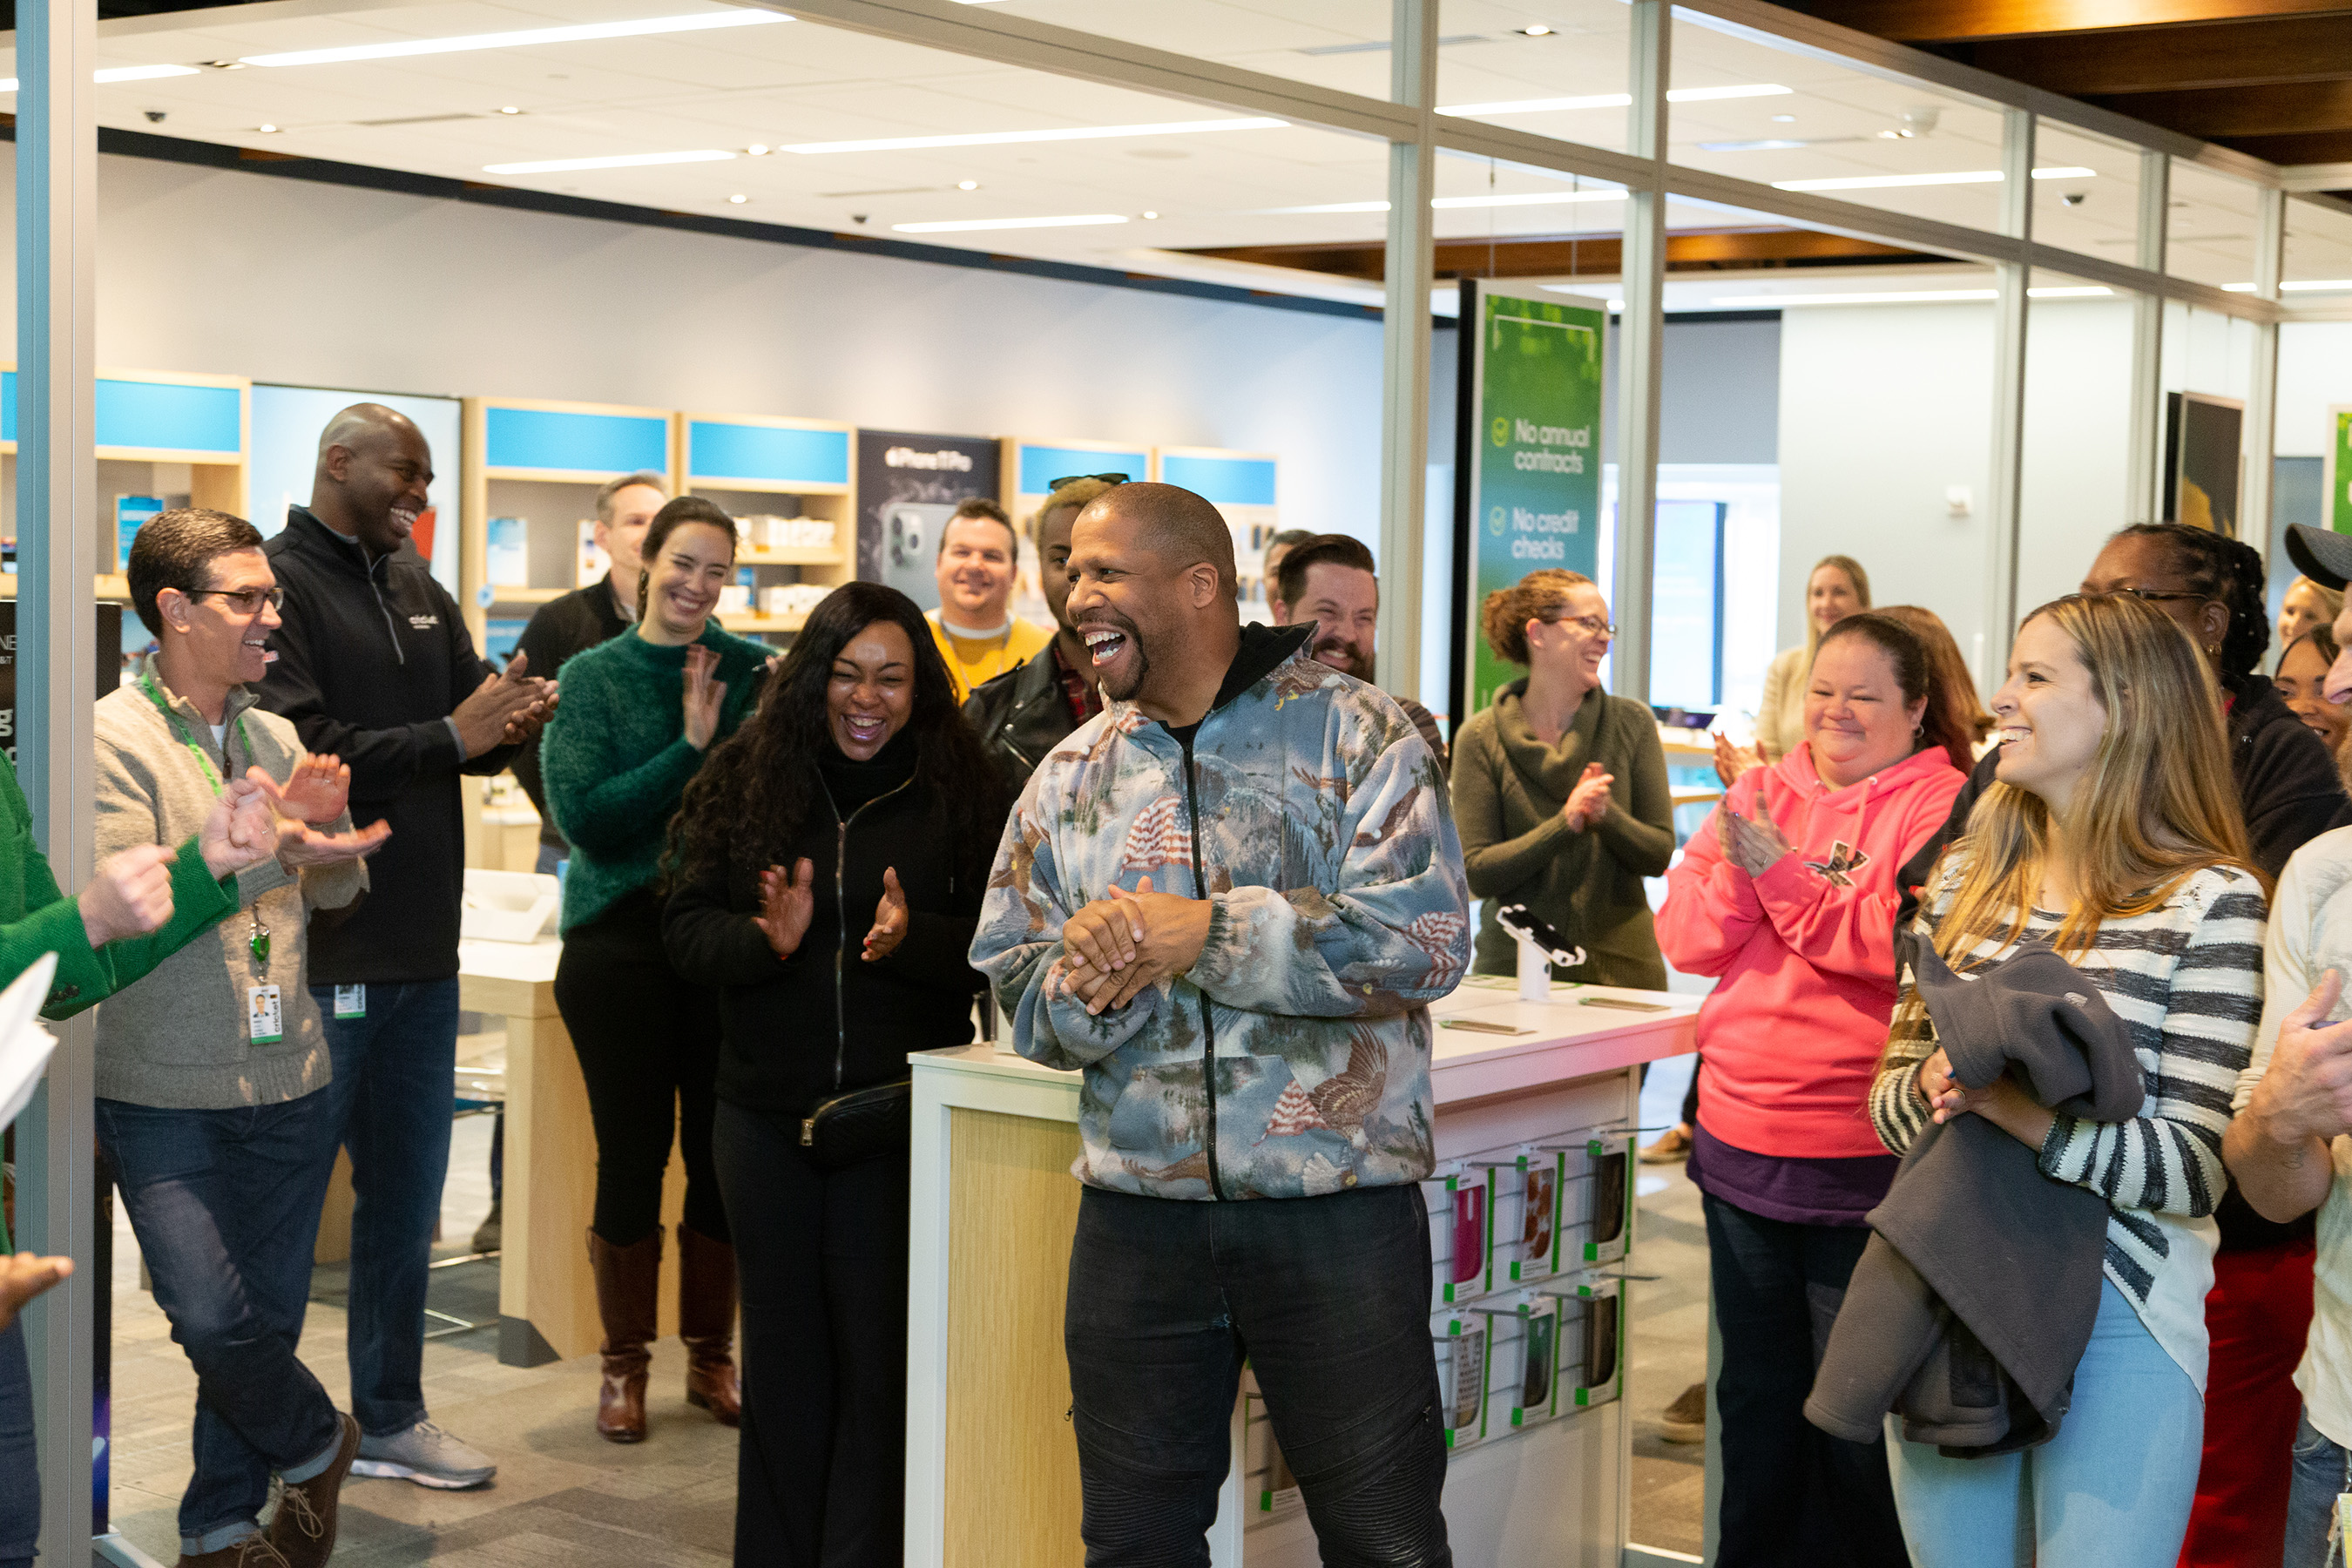 In Atlanta - Cricket's hometown market - 12 deserving families were surprised with extra holiday cheer. Winner Jerry Lacy's smile is contagious as he celebrates with other families and Cricket employees.